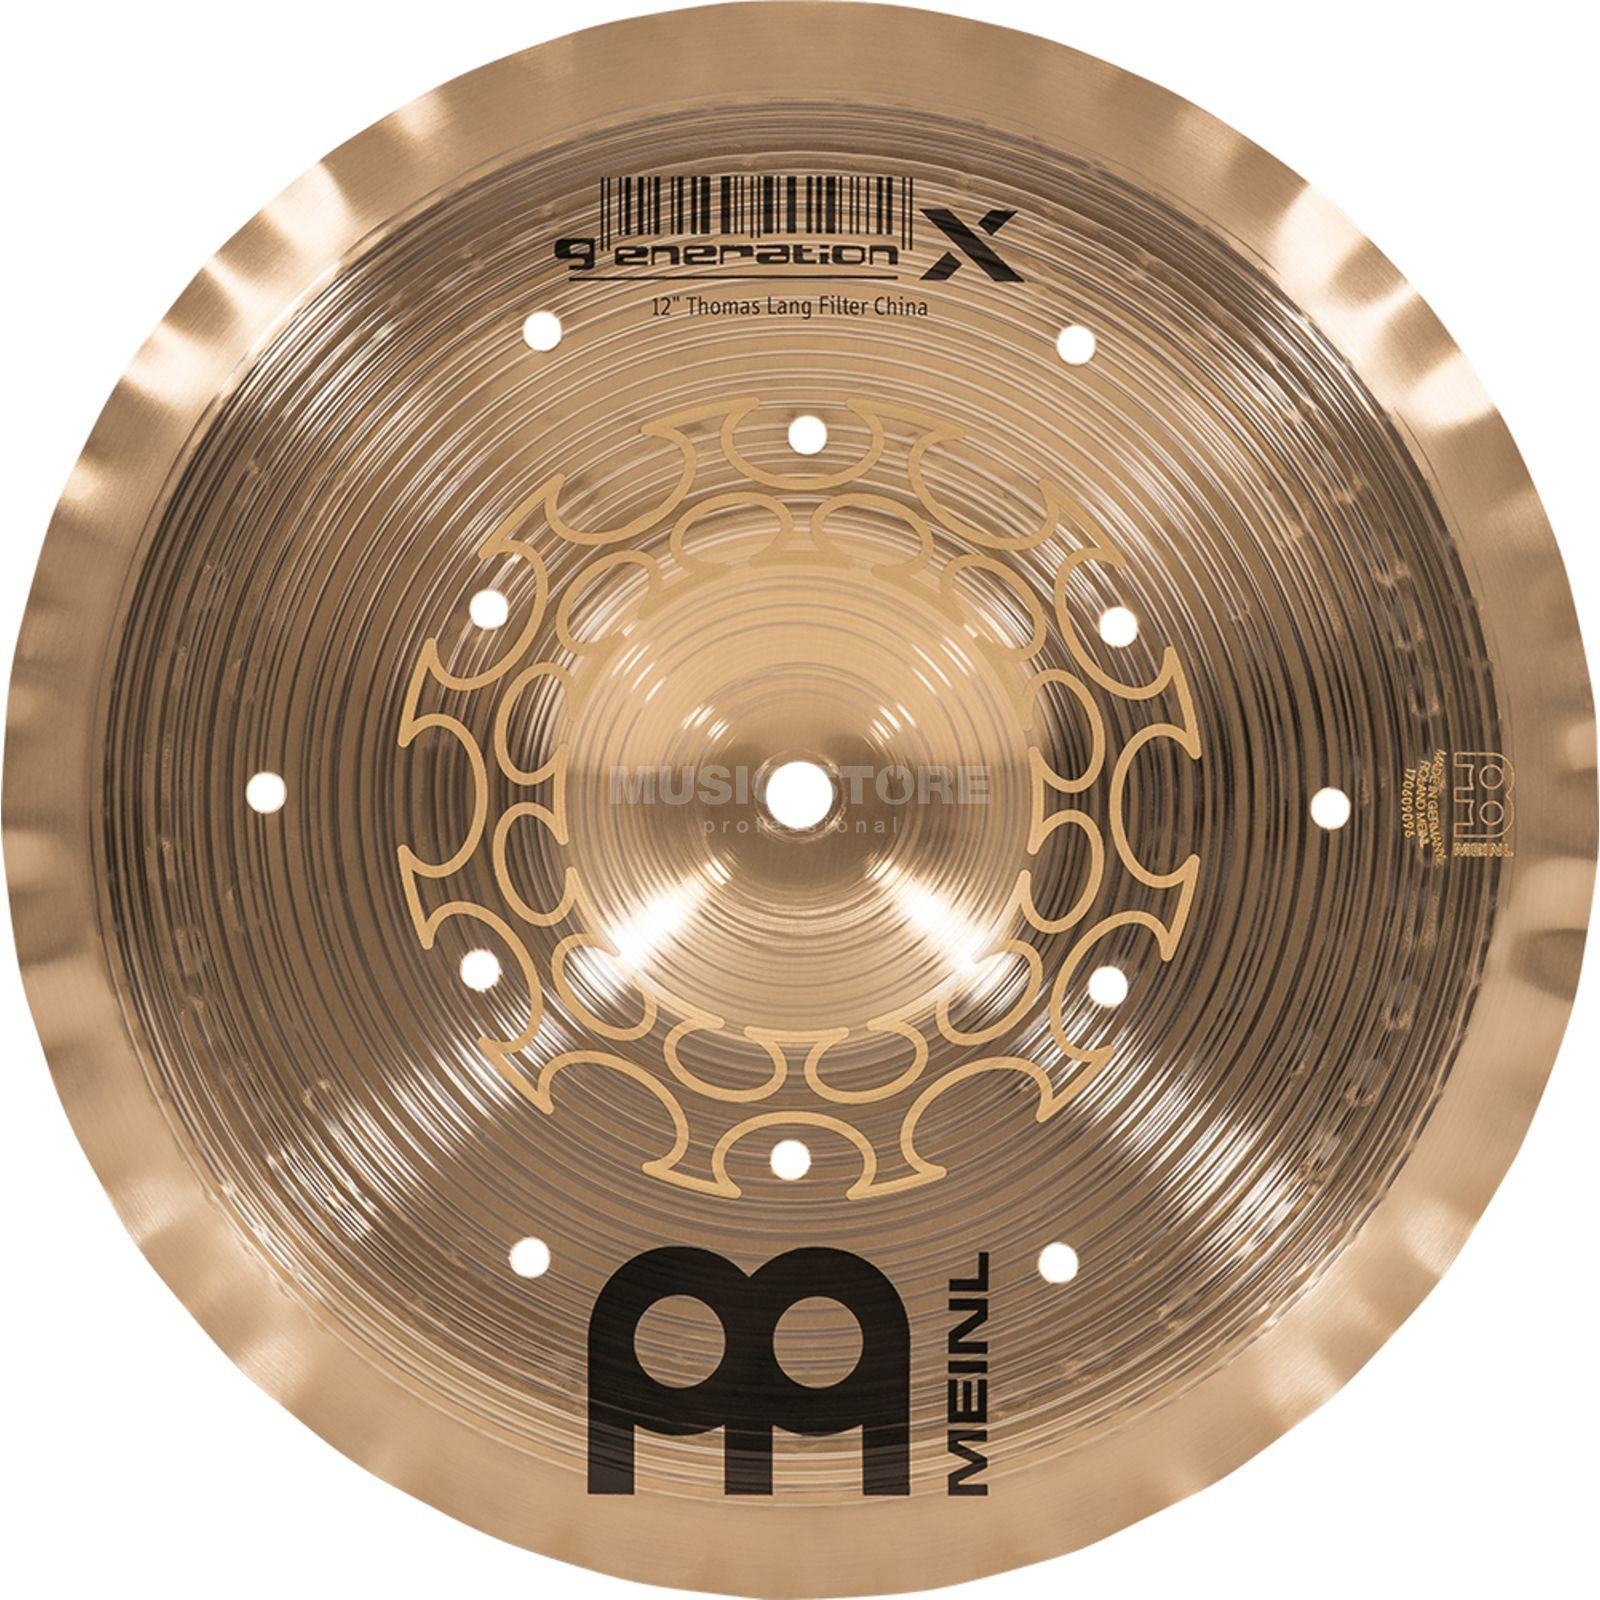 "Meinl Generation X Filter China 12"", GX-12FCH Zdjęcie produktu"